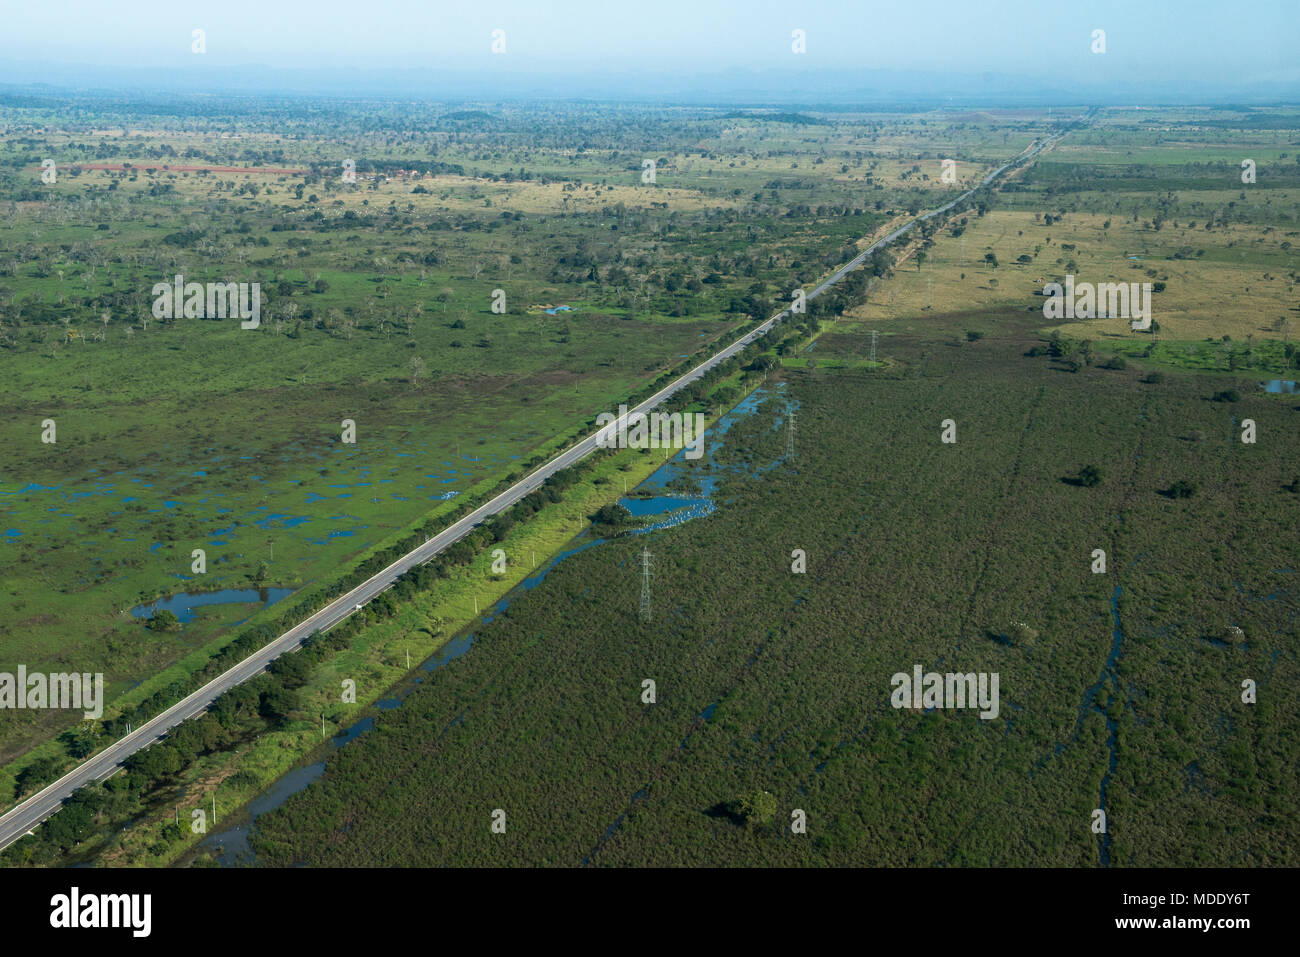 Road from Campo Grande to Corumbá (BR-262) in Mato Grosso do Sul, Brazil - Stock Image